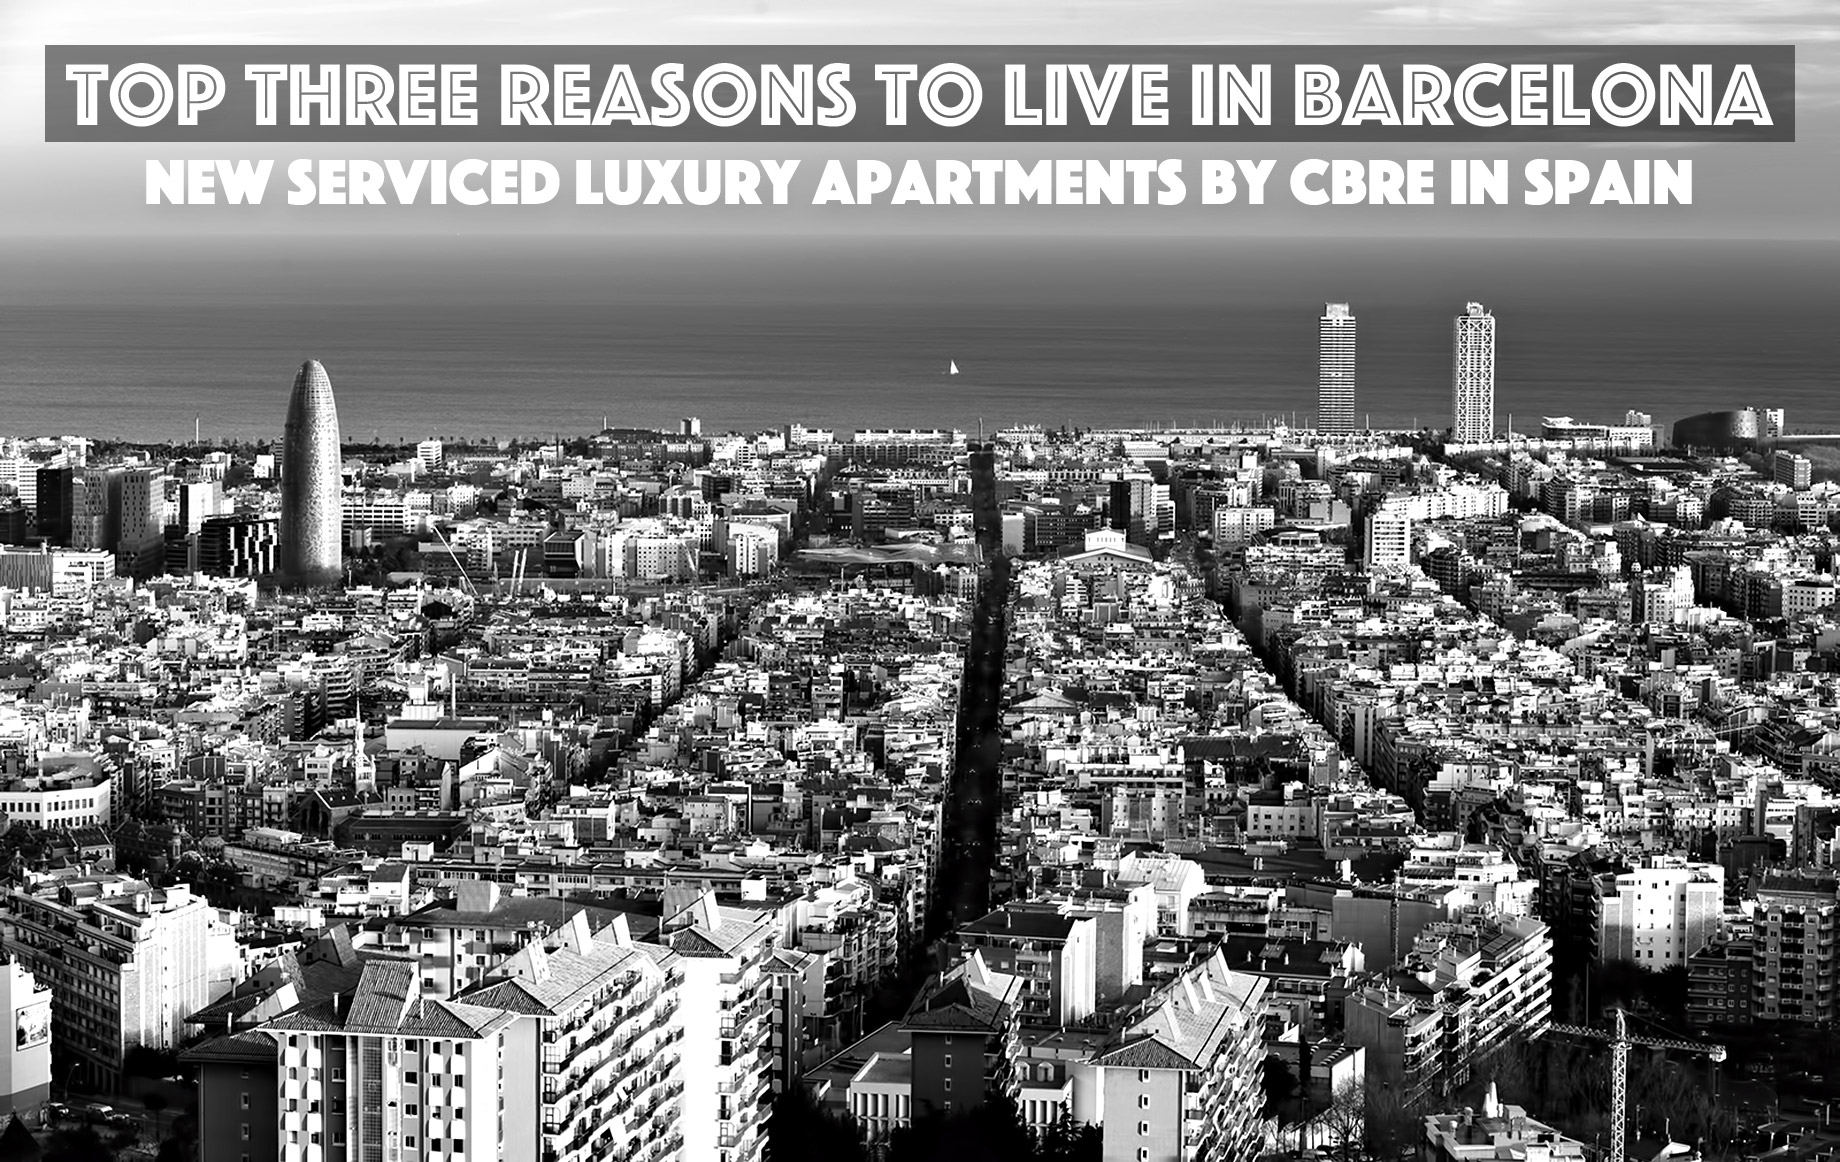 Top Three Reasons to Live in Barcelona - New Serviced Luxury Apartments by CBRE in Spain